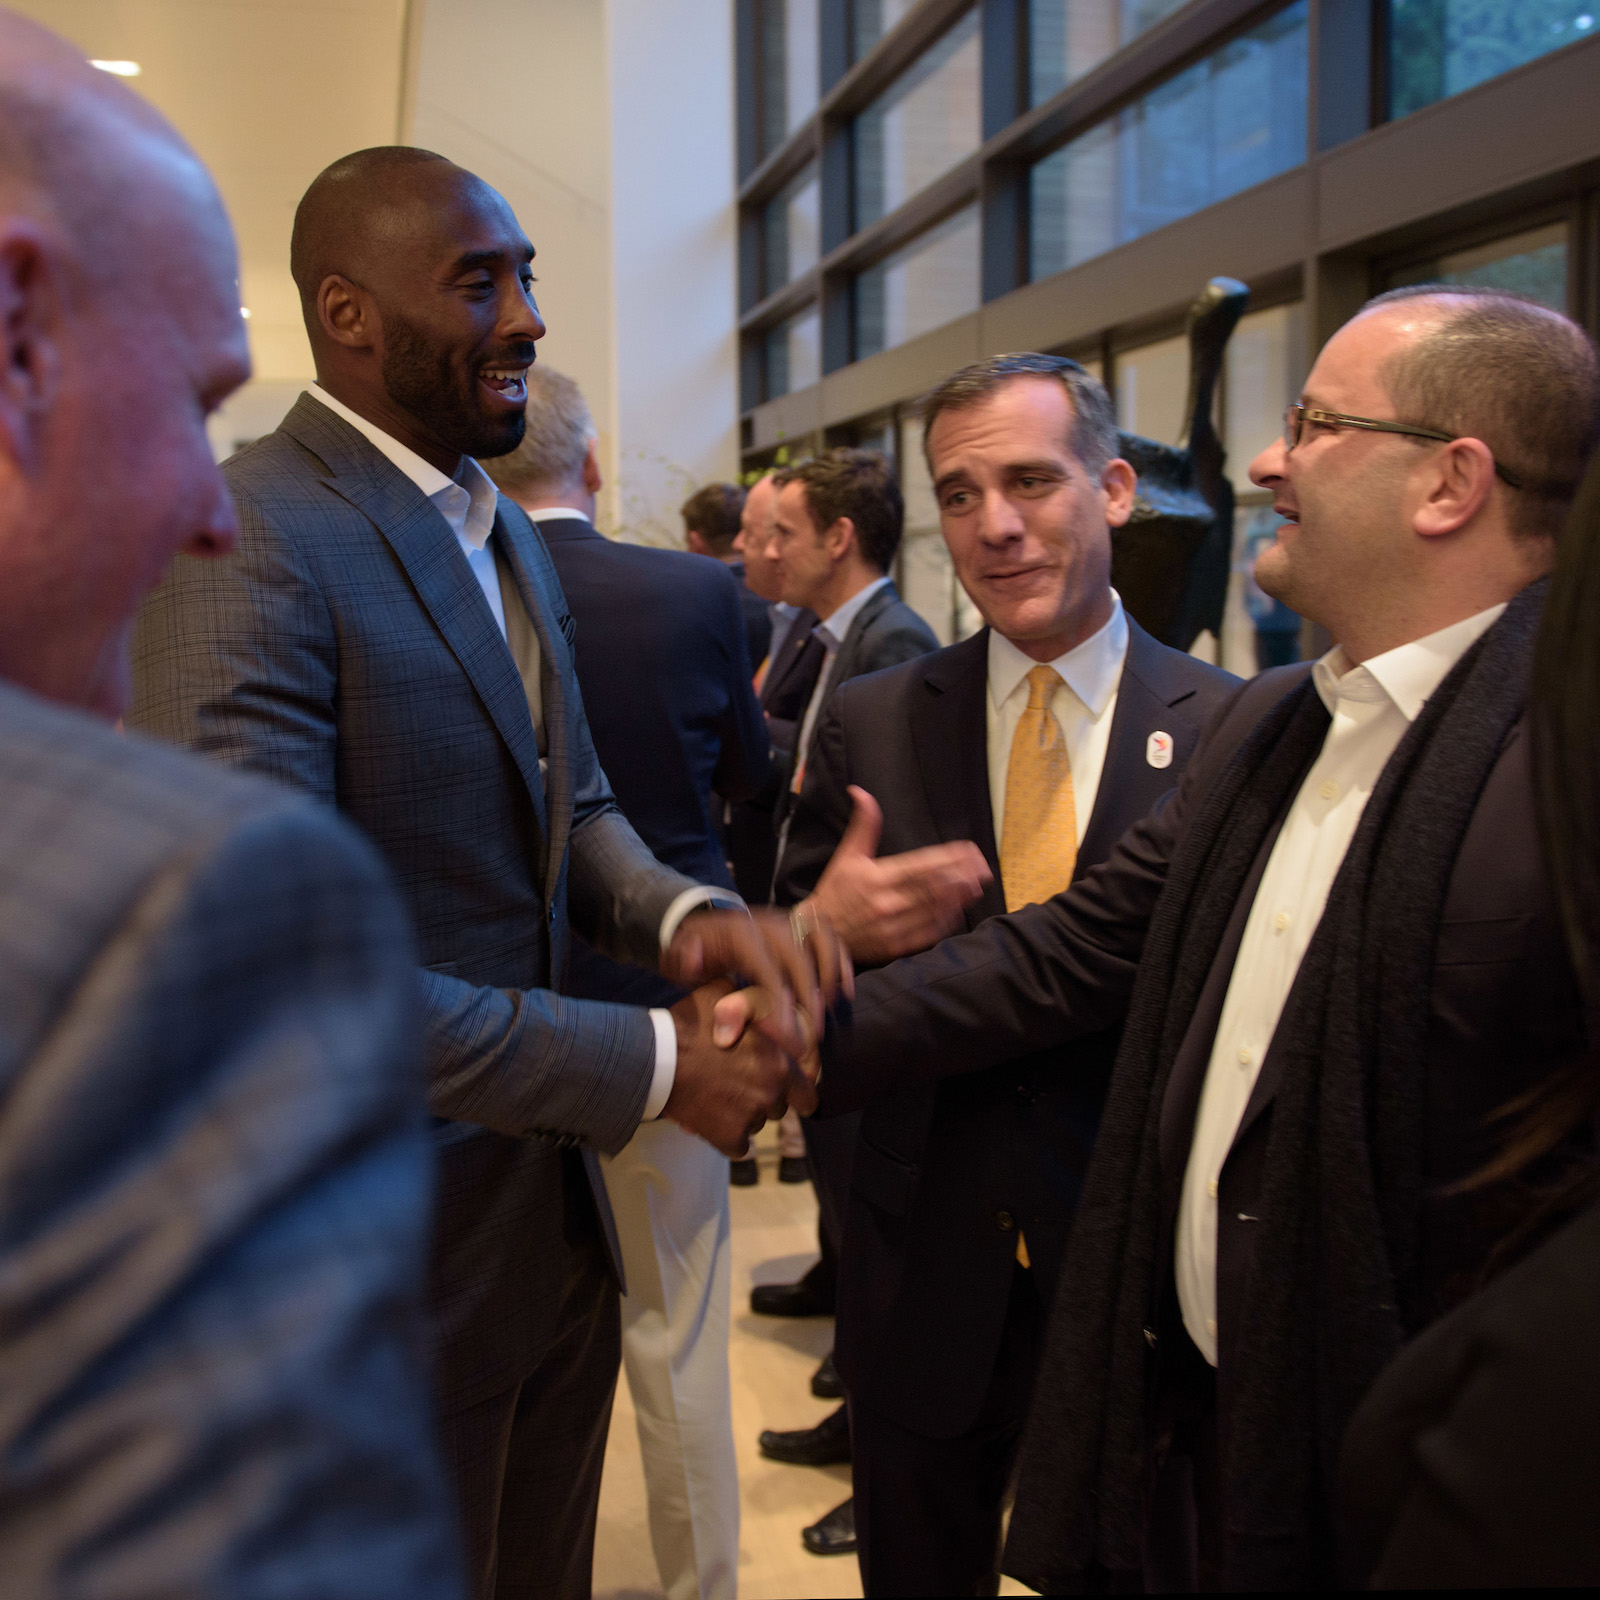 Proving, perhaps, that a communications strategy can work for everyone: Laker fans saw this guy scowl on the court for 20 years. Now Kobe Bryant is all smiles as he meets Patrick Baumann, right, LA mayor Eric Garcetti in the middle // David Lienemann/LA2024